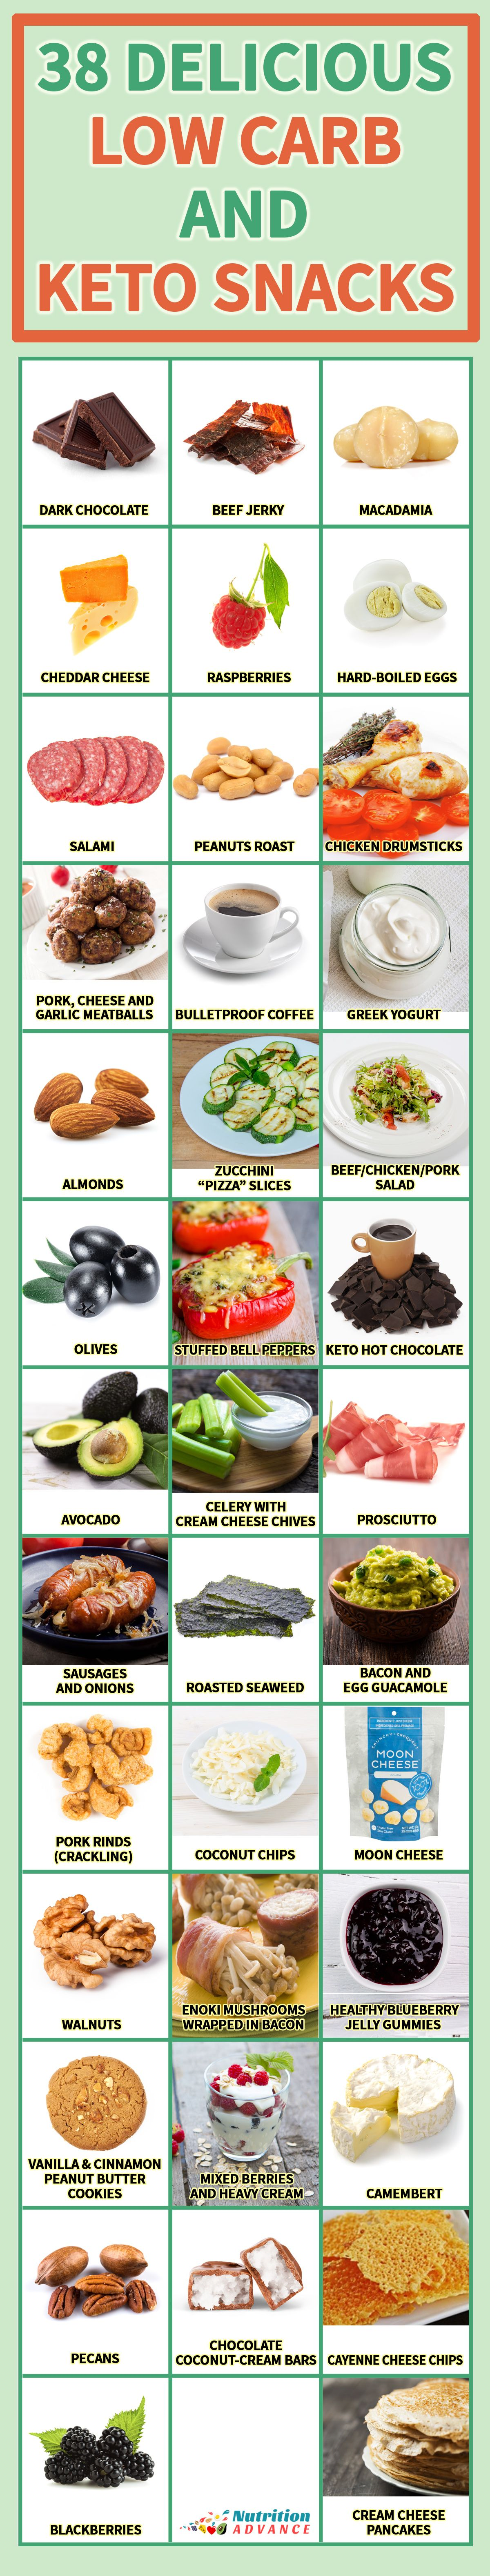 38 Delicious Low Carb and Keto Snacks - Looking for inspiration? Then here's a list of 38 delicious keto snacks, recipes, foods, and ideas. All of them are ready in less than 15 minutes! See the article at: http://nutritionadvance.com/low-carb-keto-snacks